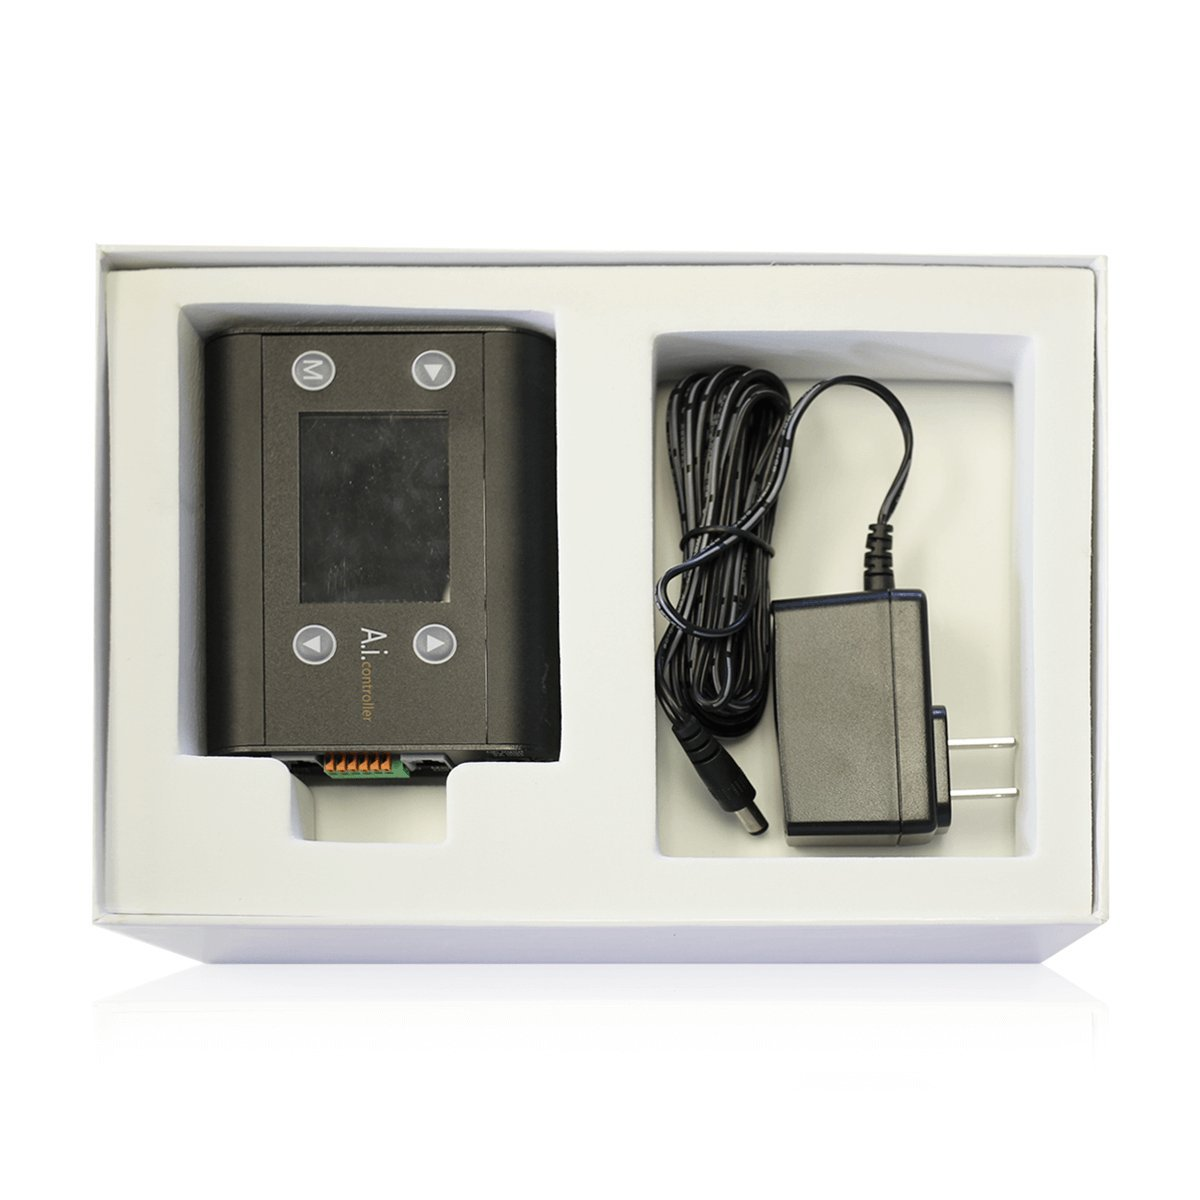 iPower Double End Ballast Master Controller Suitable for iPower Double Ended Ballast and Grow Light System Kits for Indoor Plants